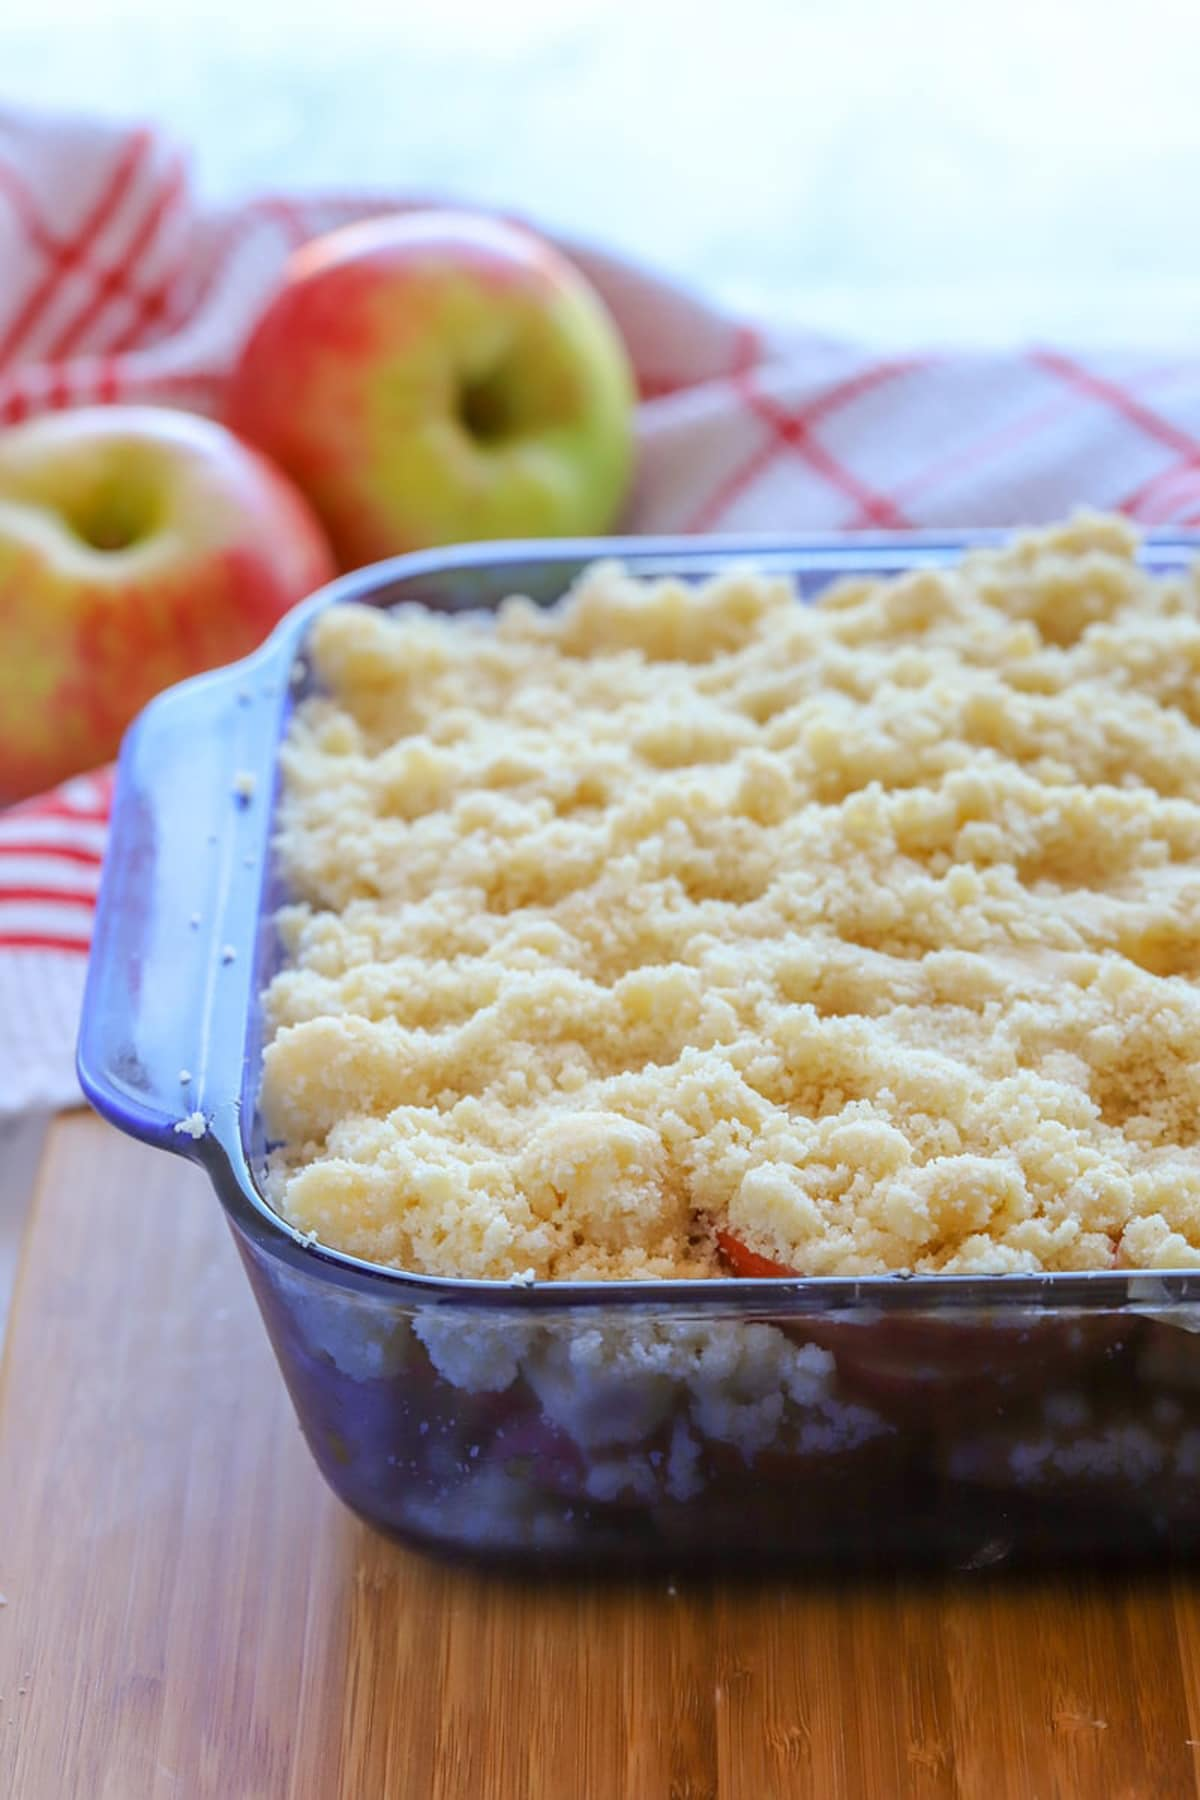 Blue pyrex dish containing an Apple Crumble before baking, 2 red apples on table.